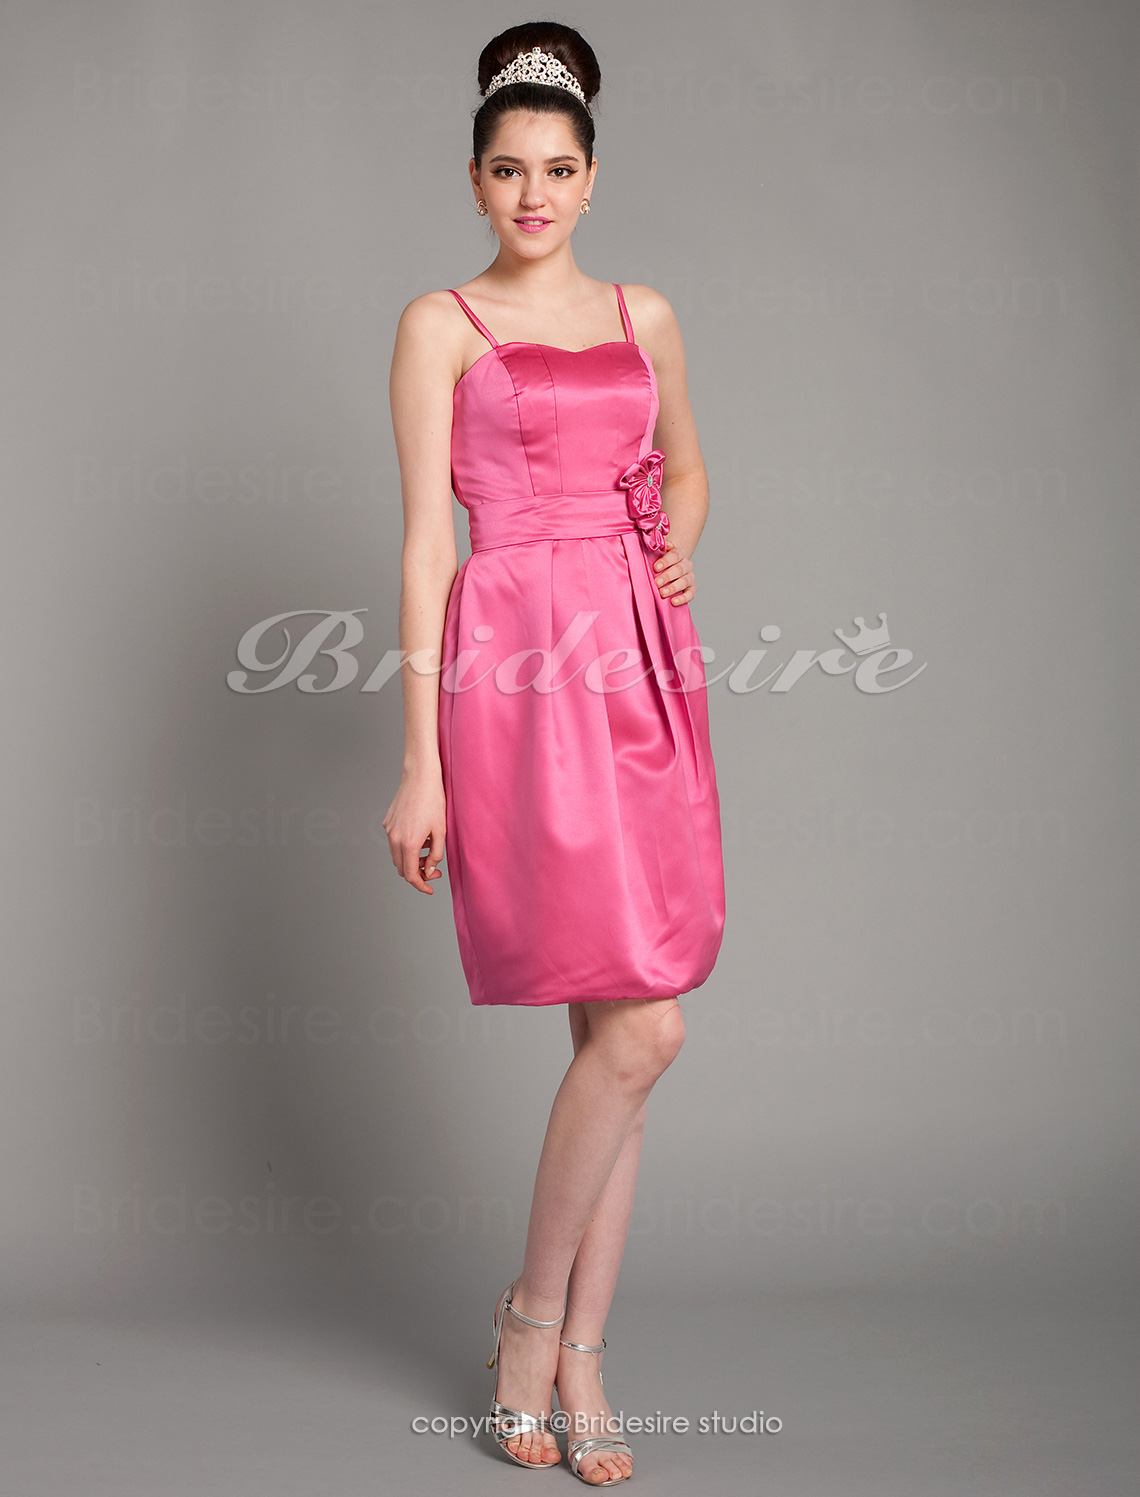 A-line Satin Knee-length Sweetheart Bridesmaid Dress With Flower(s)